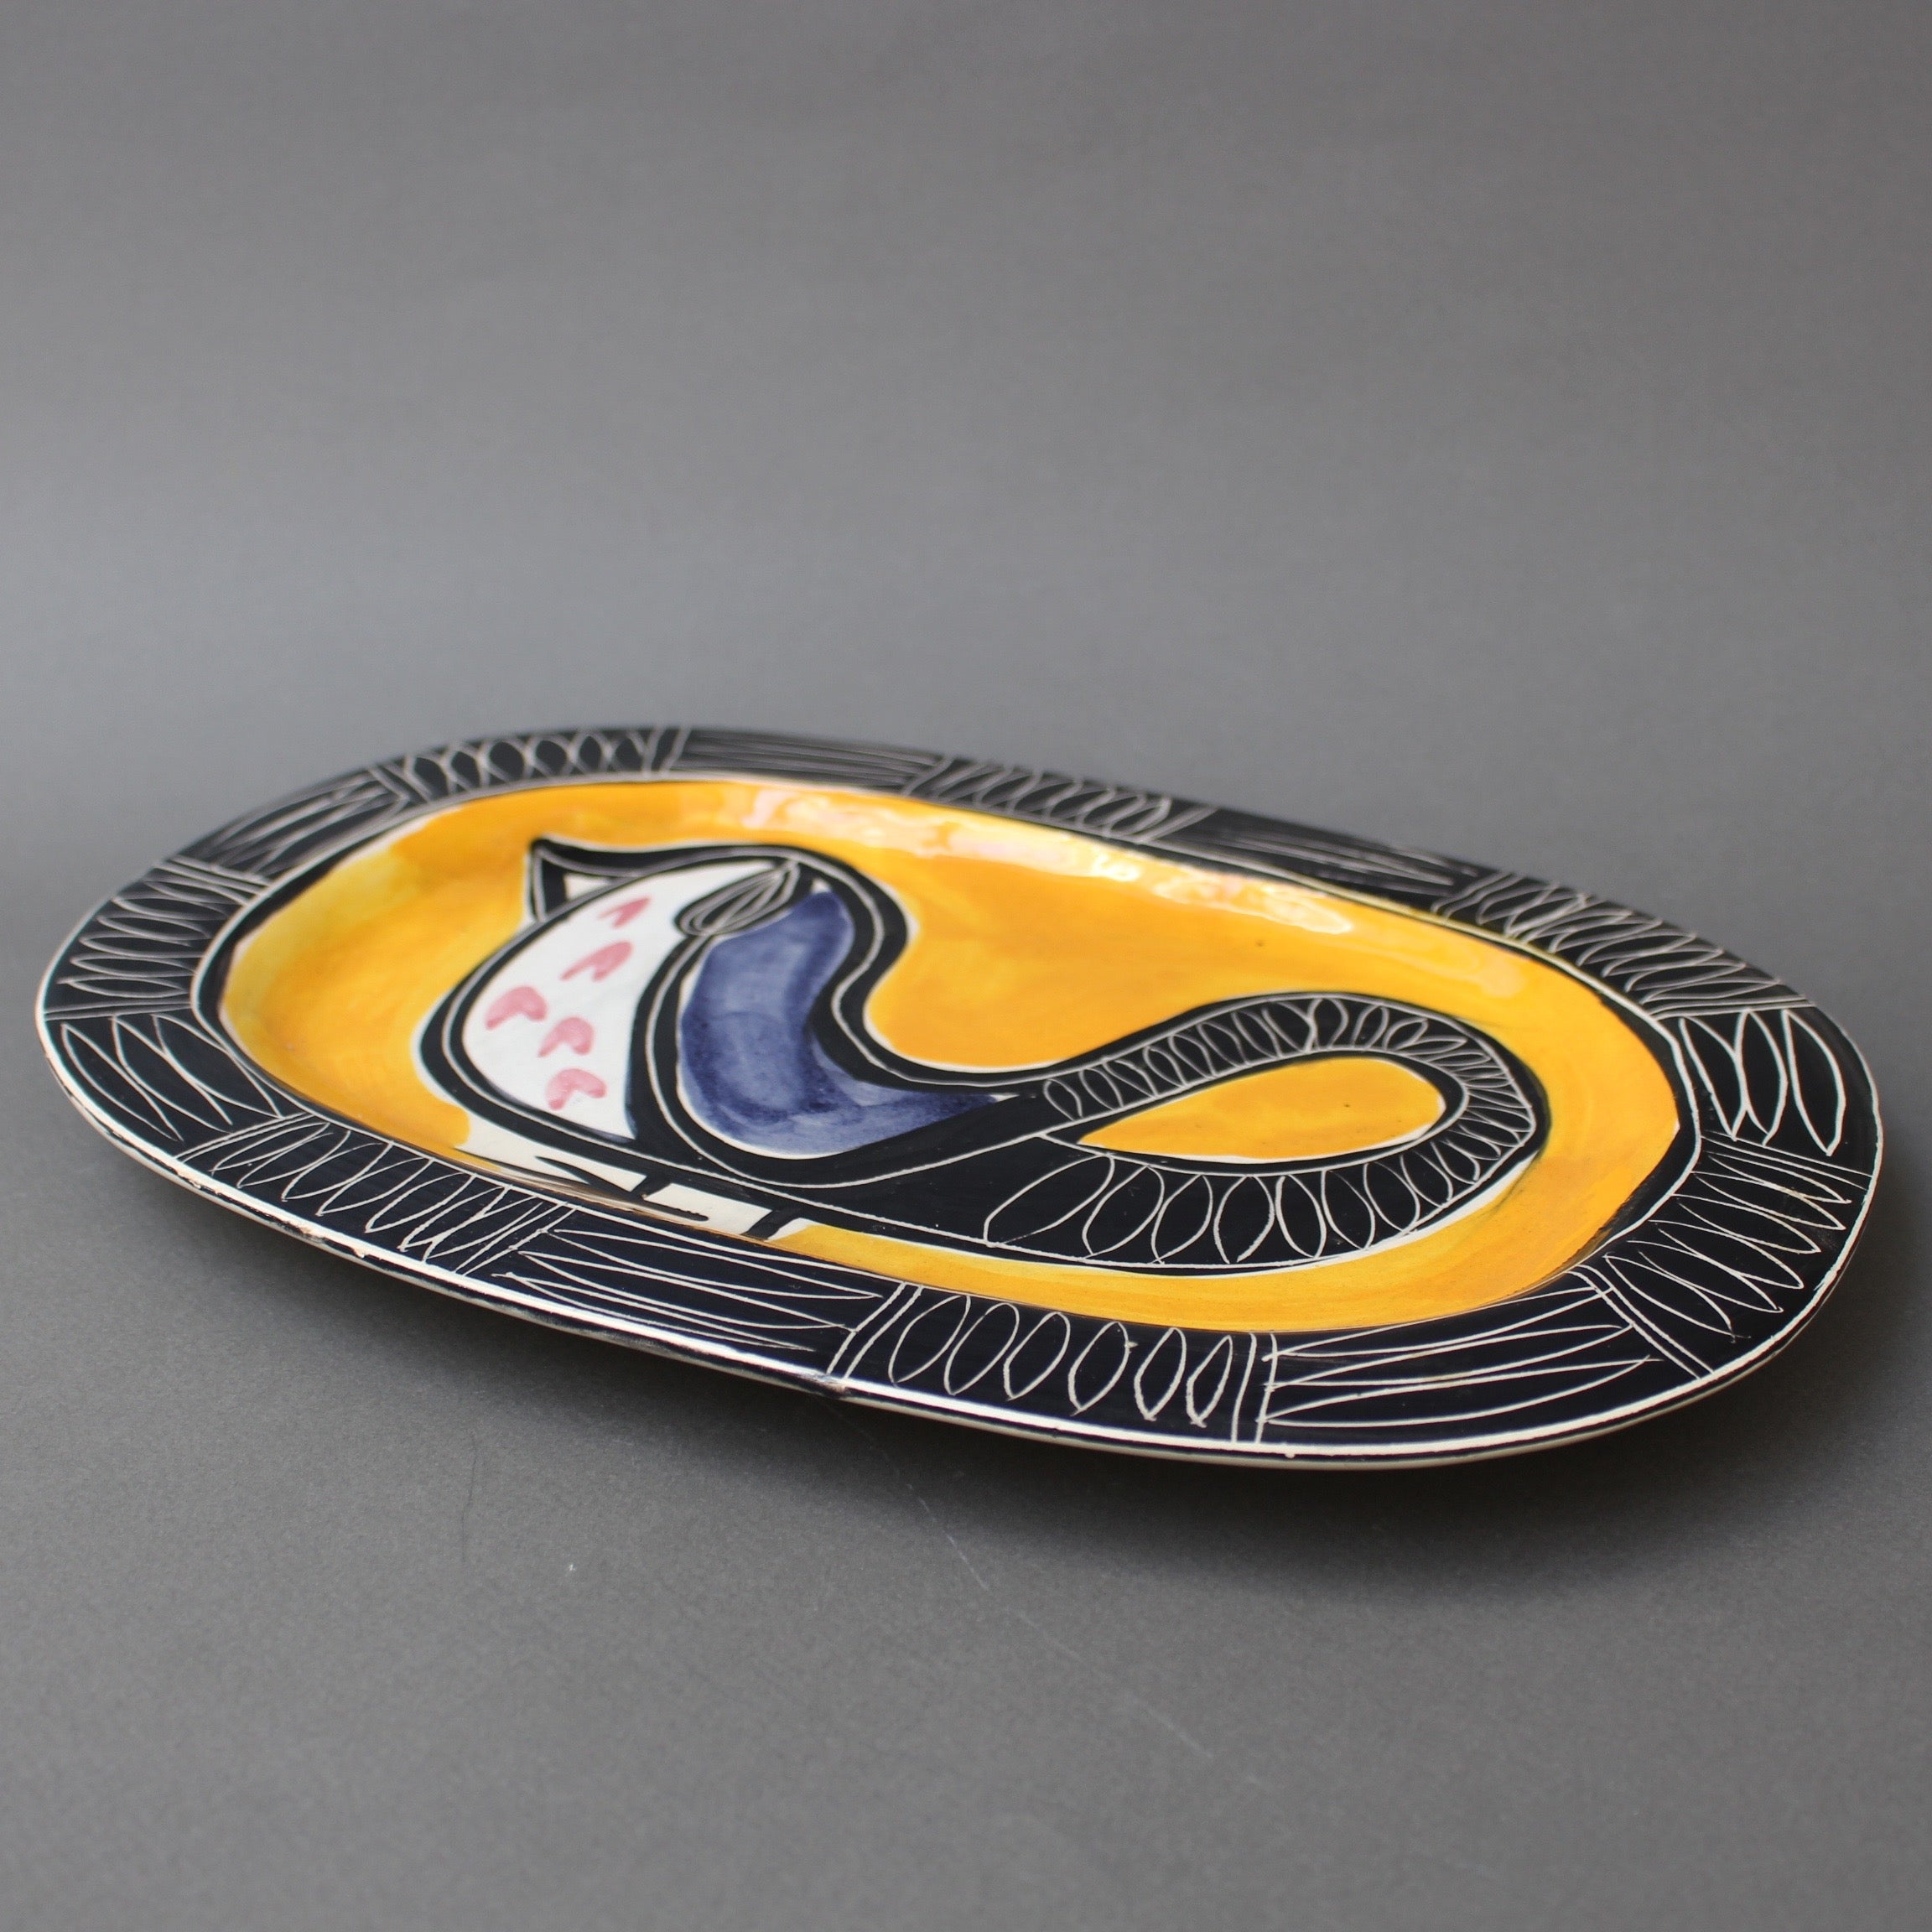 Ceramic Decorative Platter with Bird Motif by Jacques Pouchain (circa 1950s)